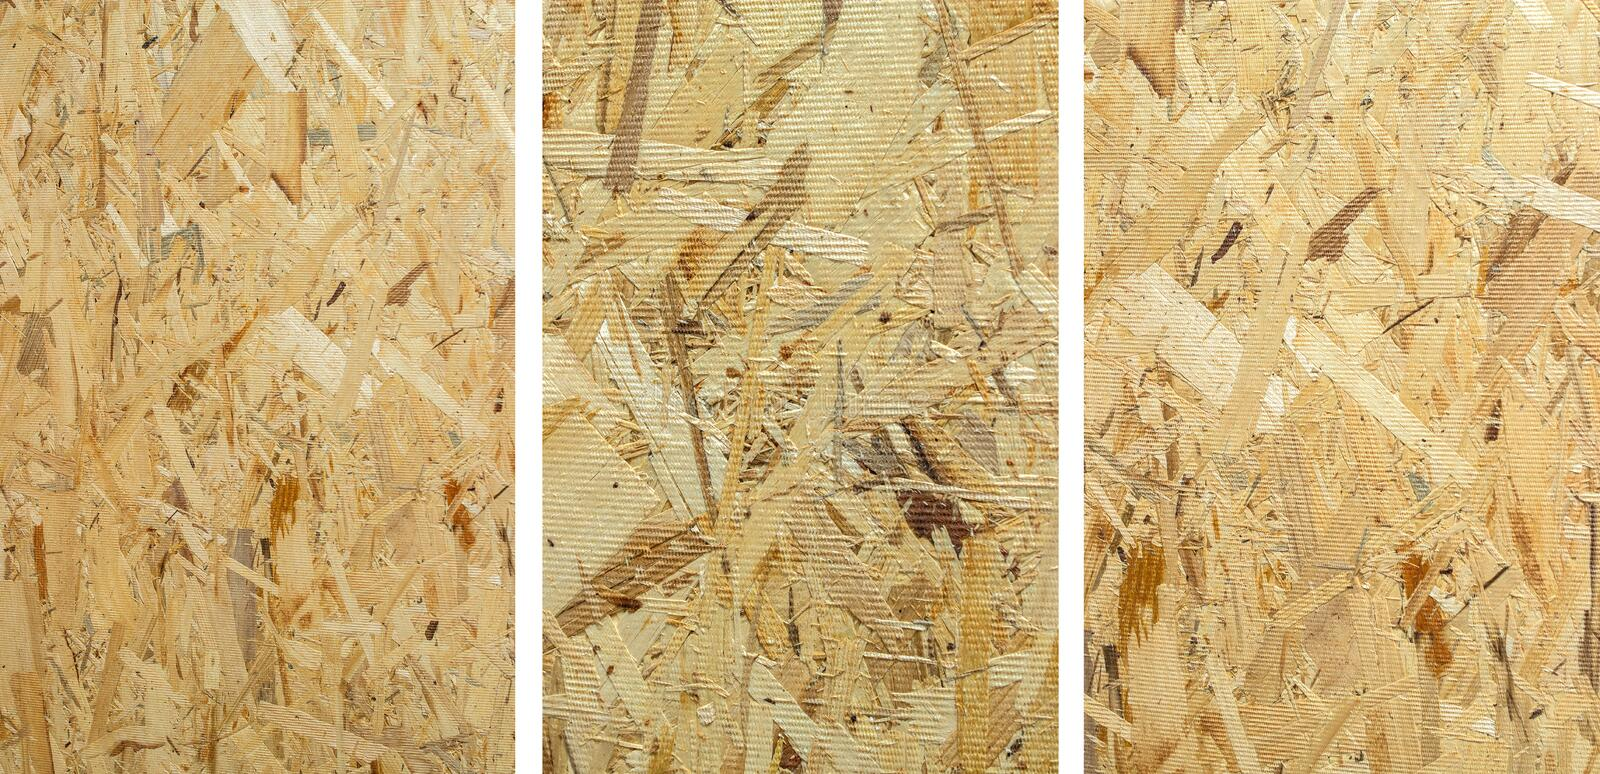 Construction wood plate OSB - reverse side. royalty free stock image